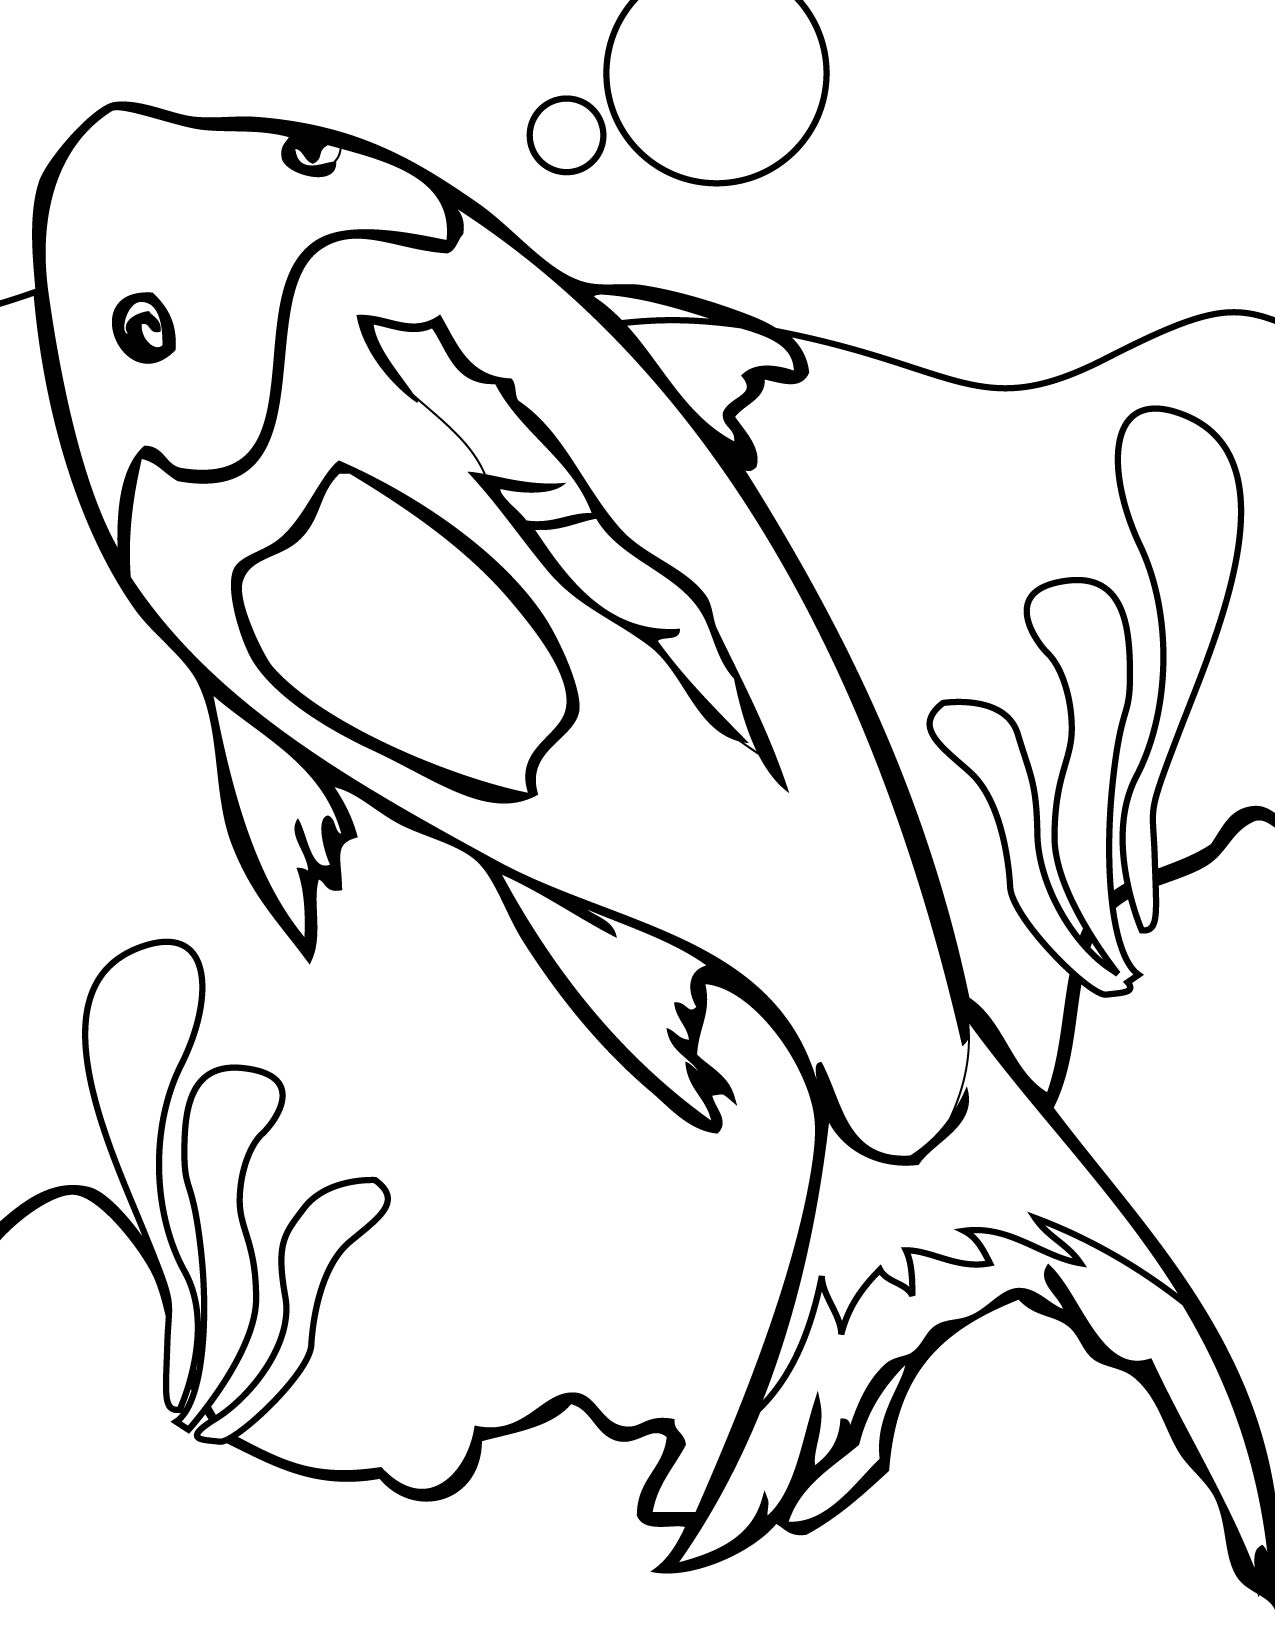 coral reef coloring book pages - photo#27